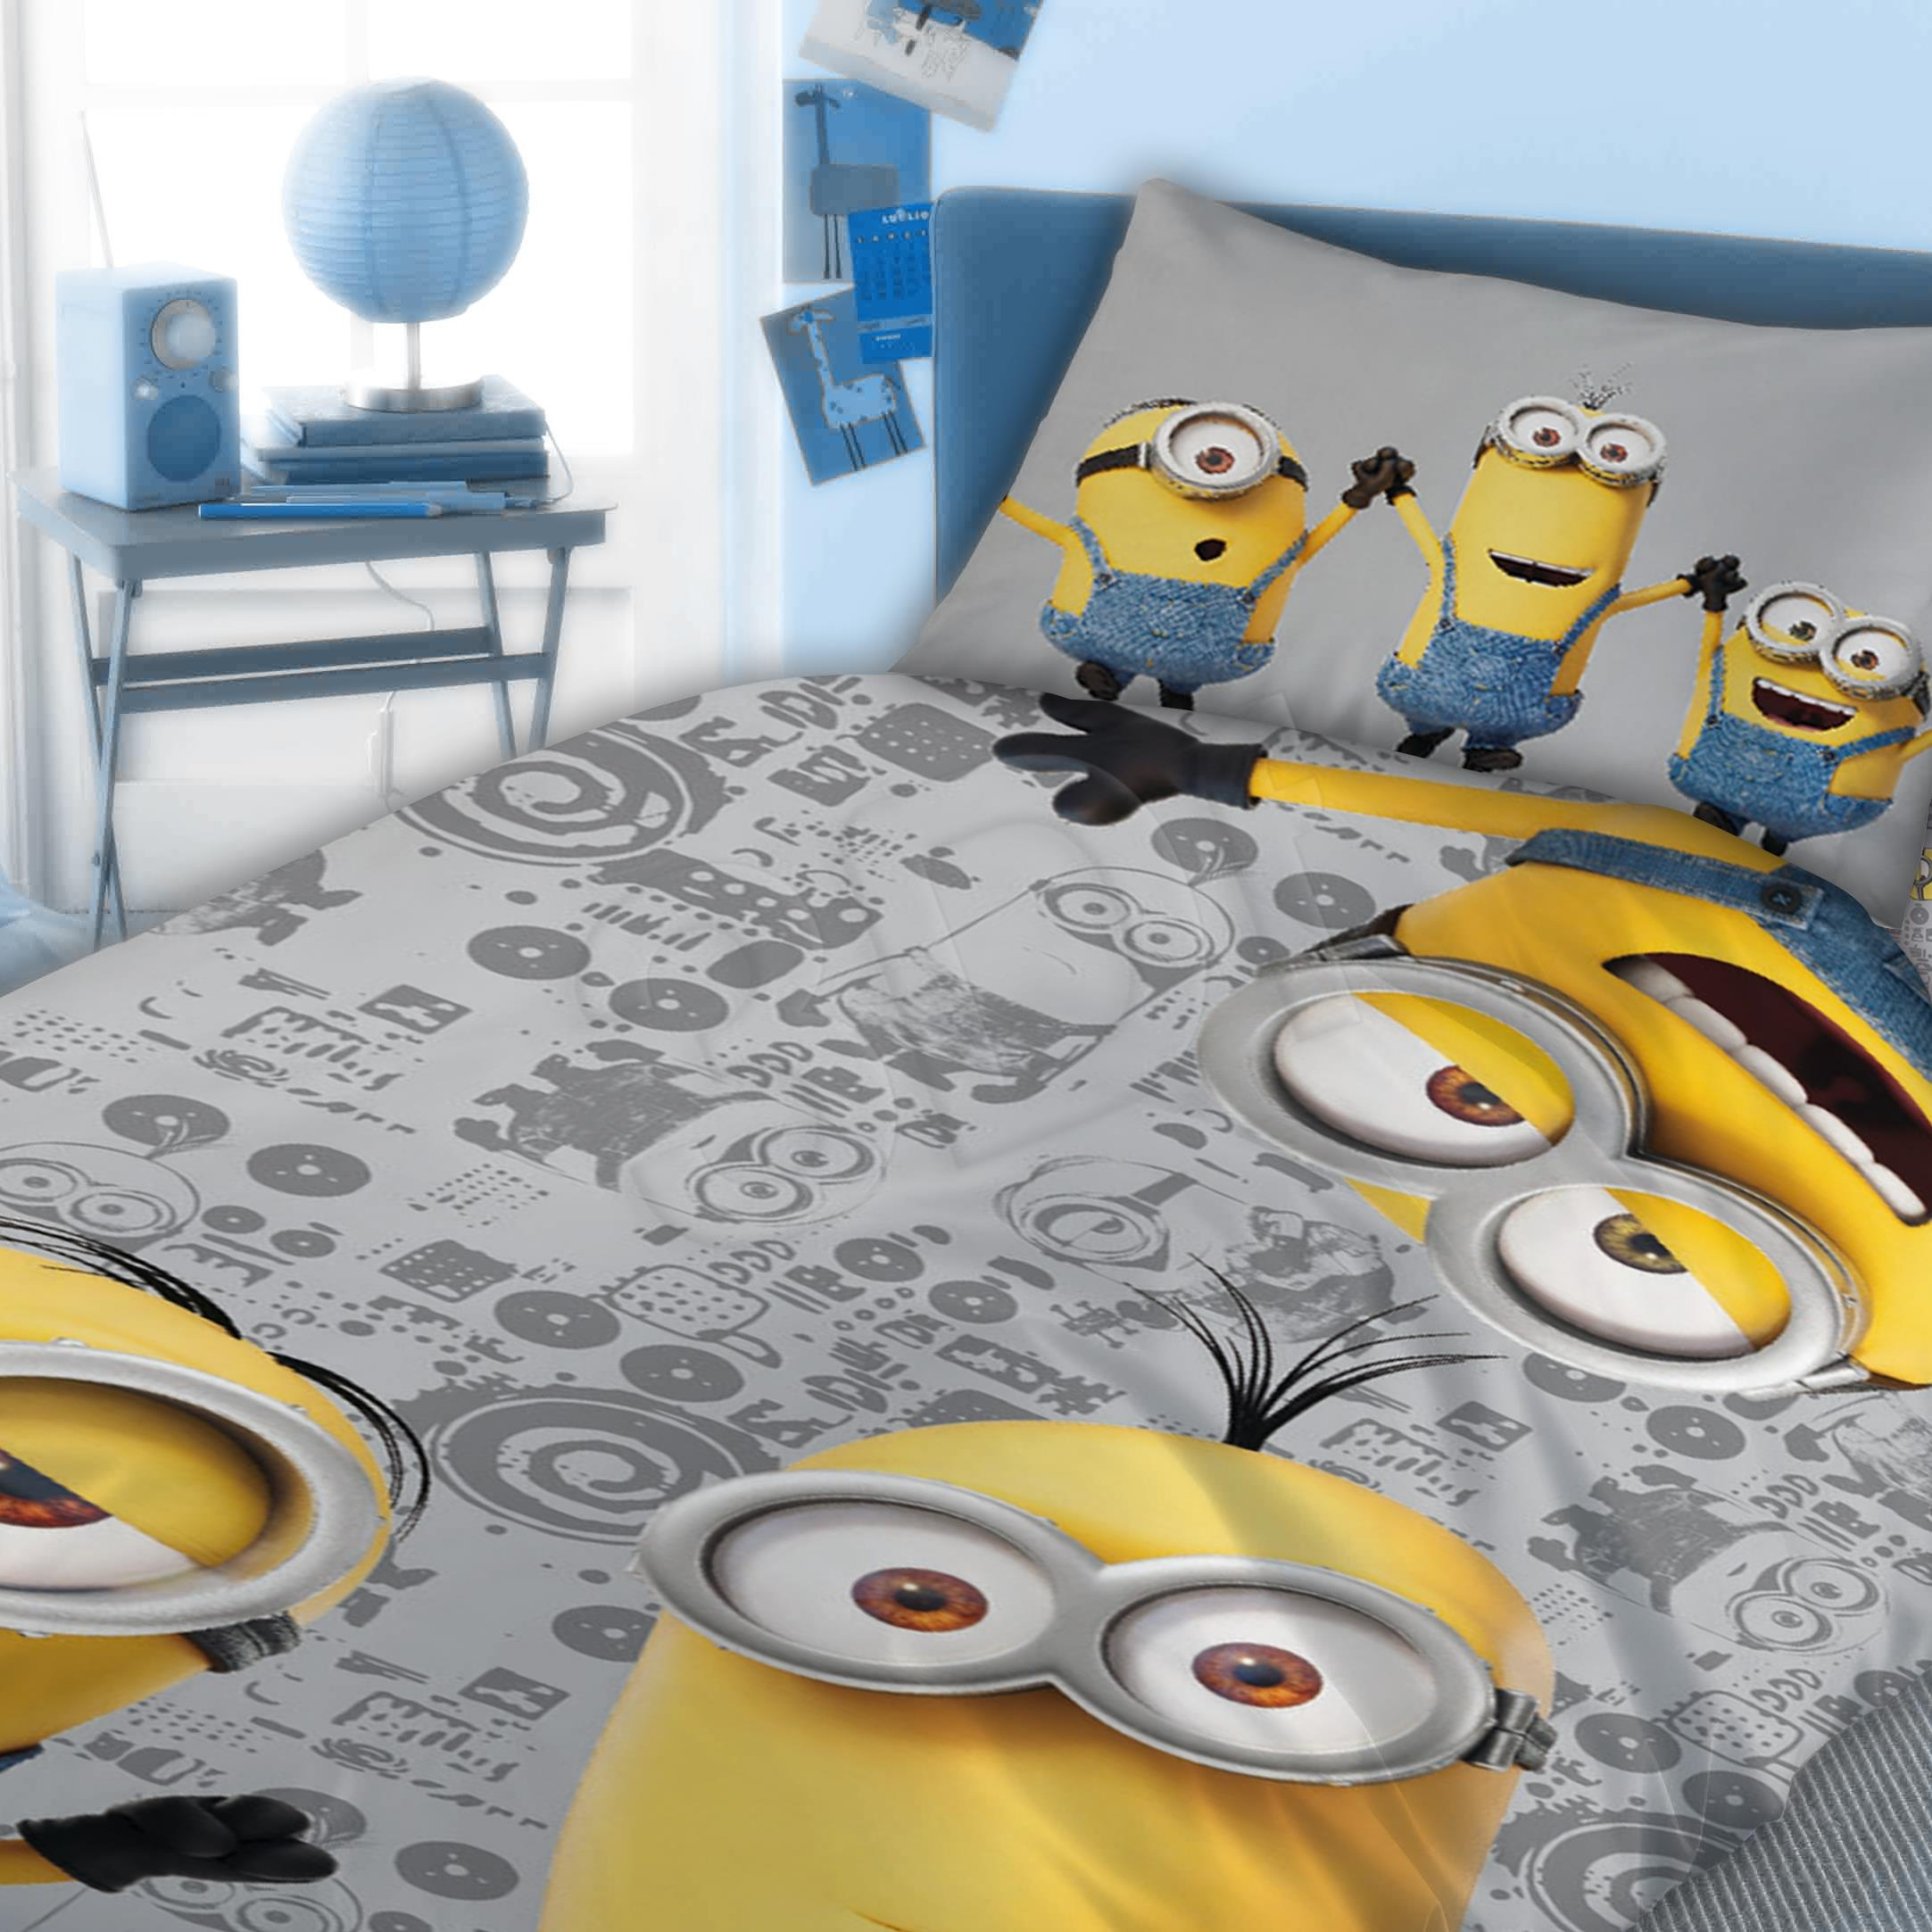 Bed linen Faro  FAO065 (140x200 cm, 70x90 cm; blue color, gray color, yellow color) FAO065 Gultas veļa